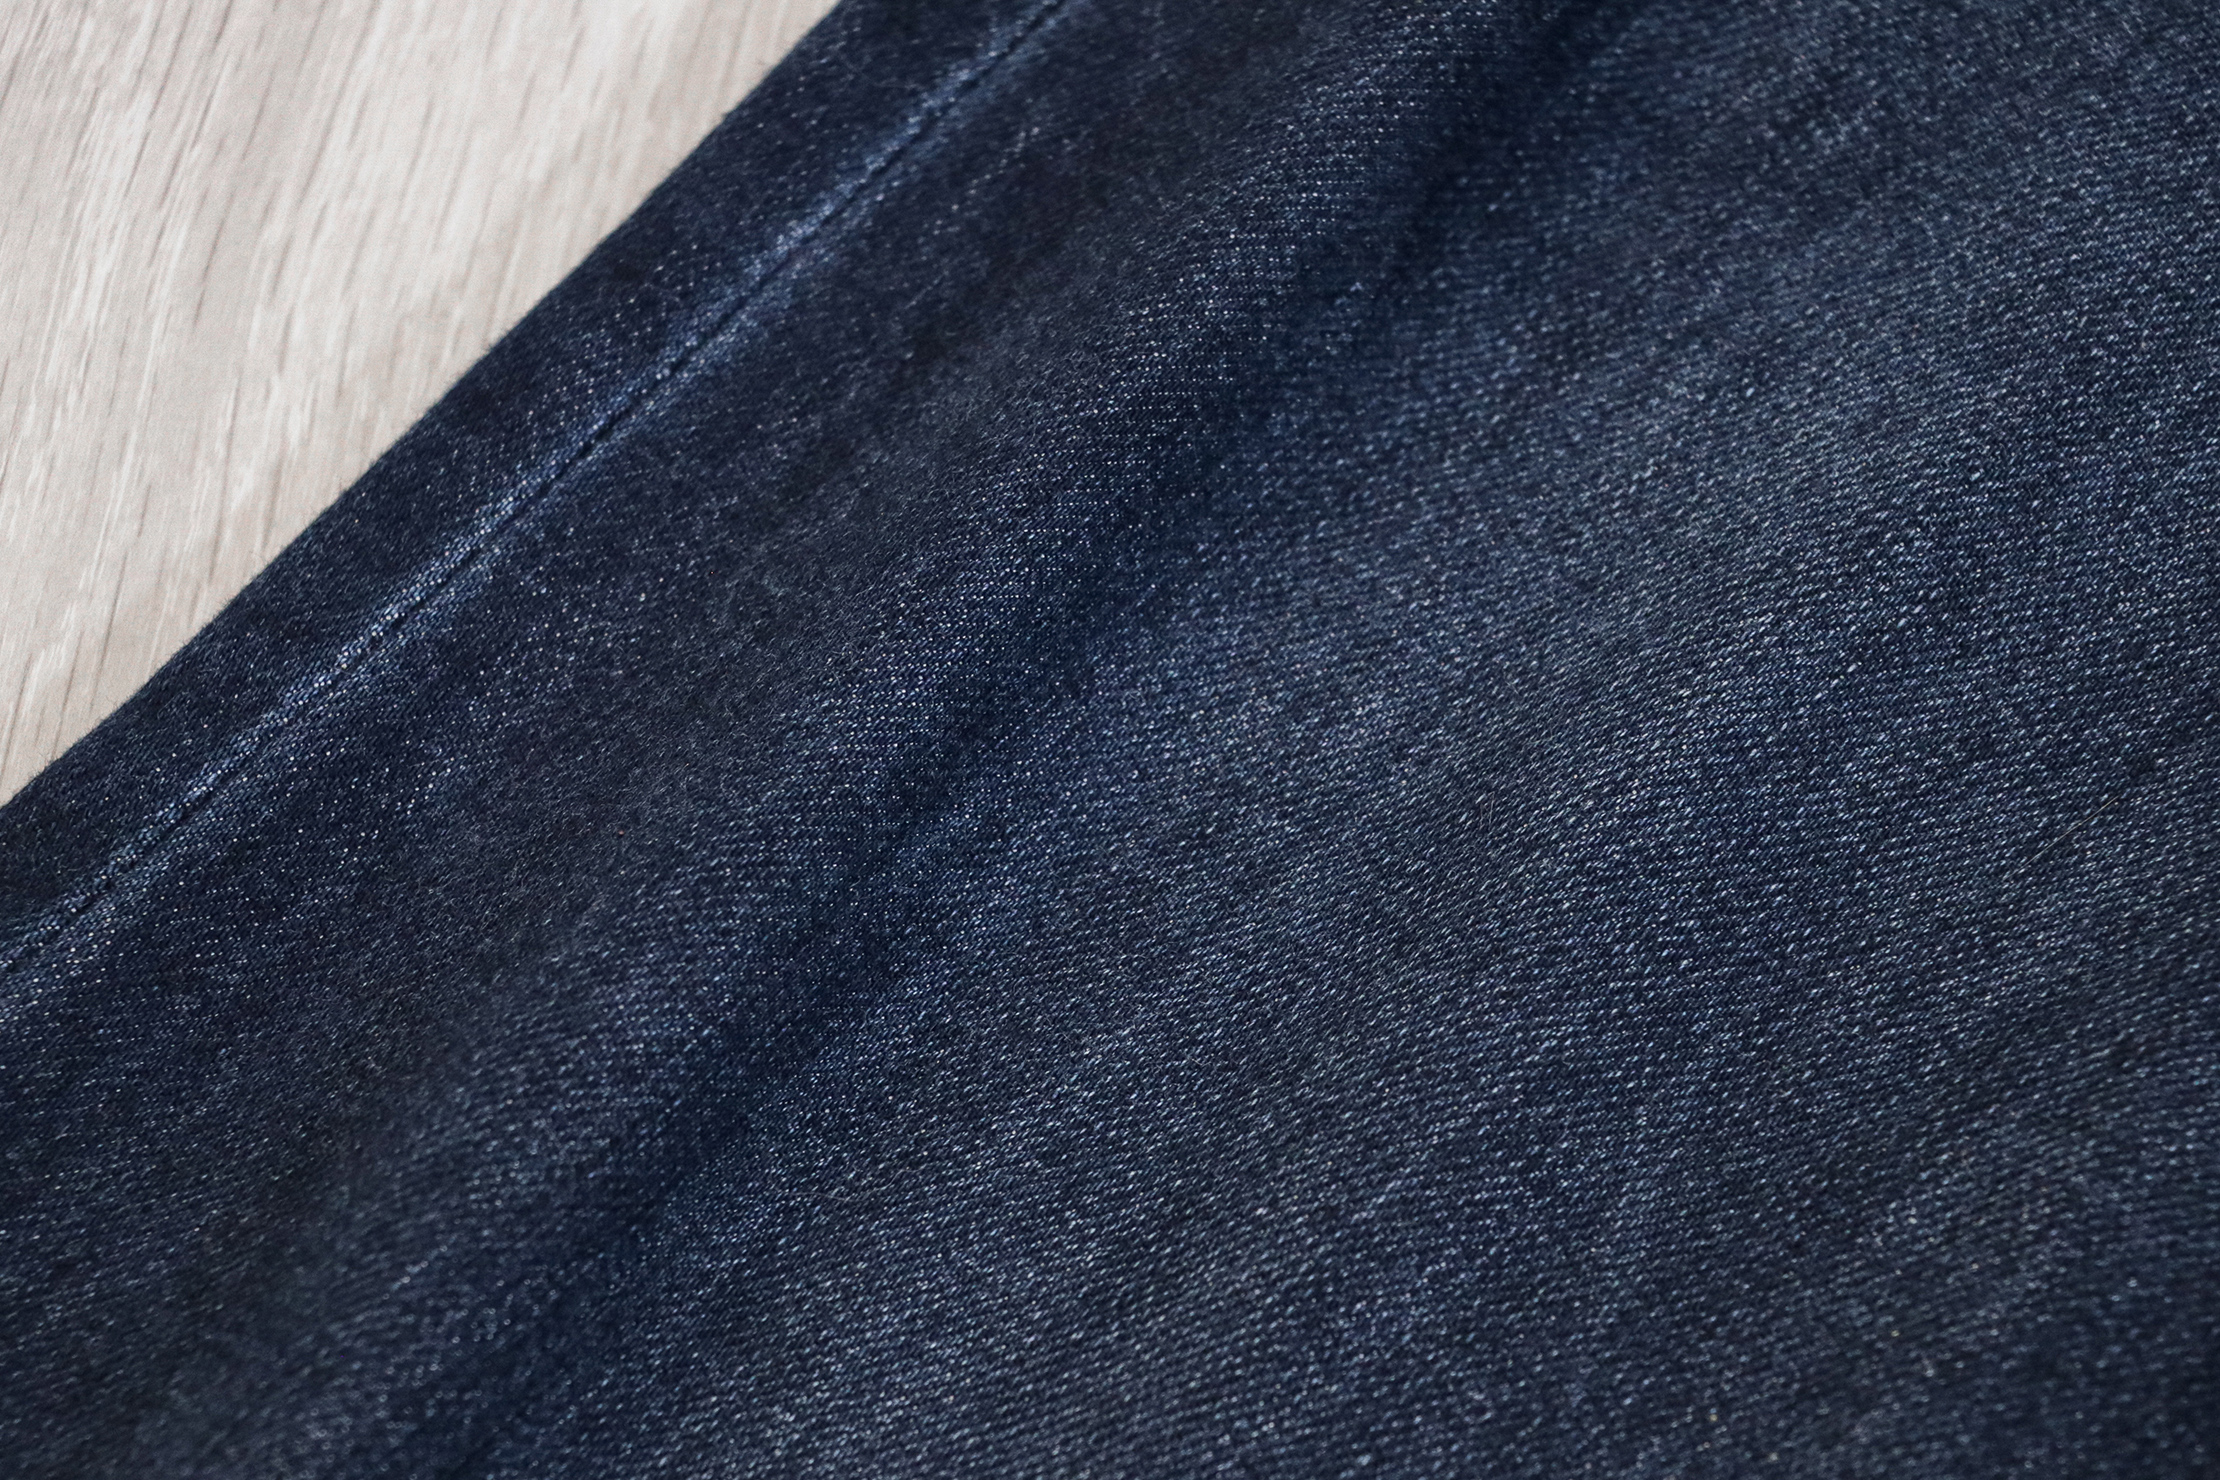 Bluffworks Departure Travel Jeans Material